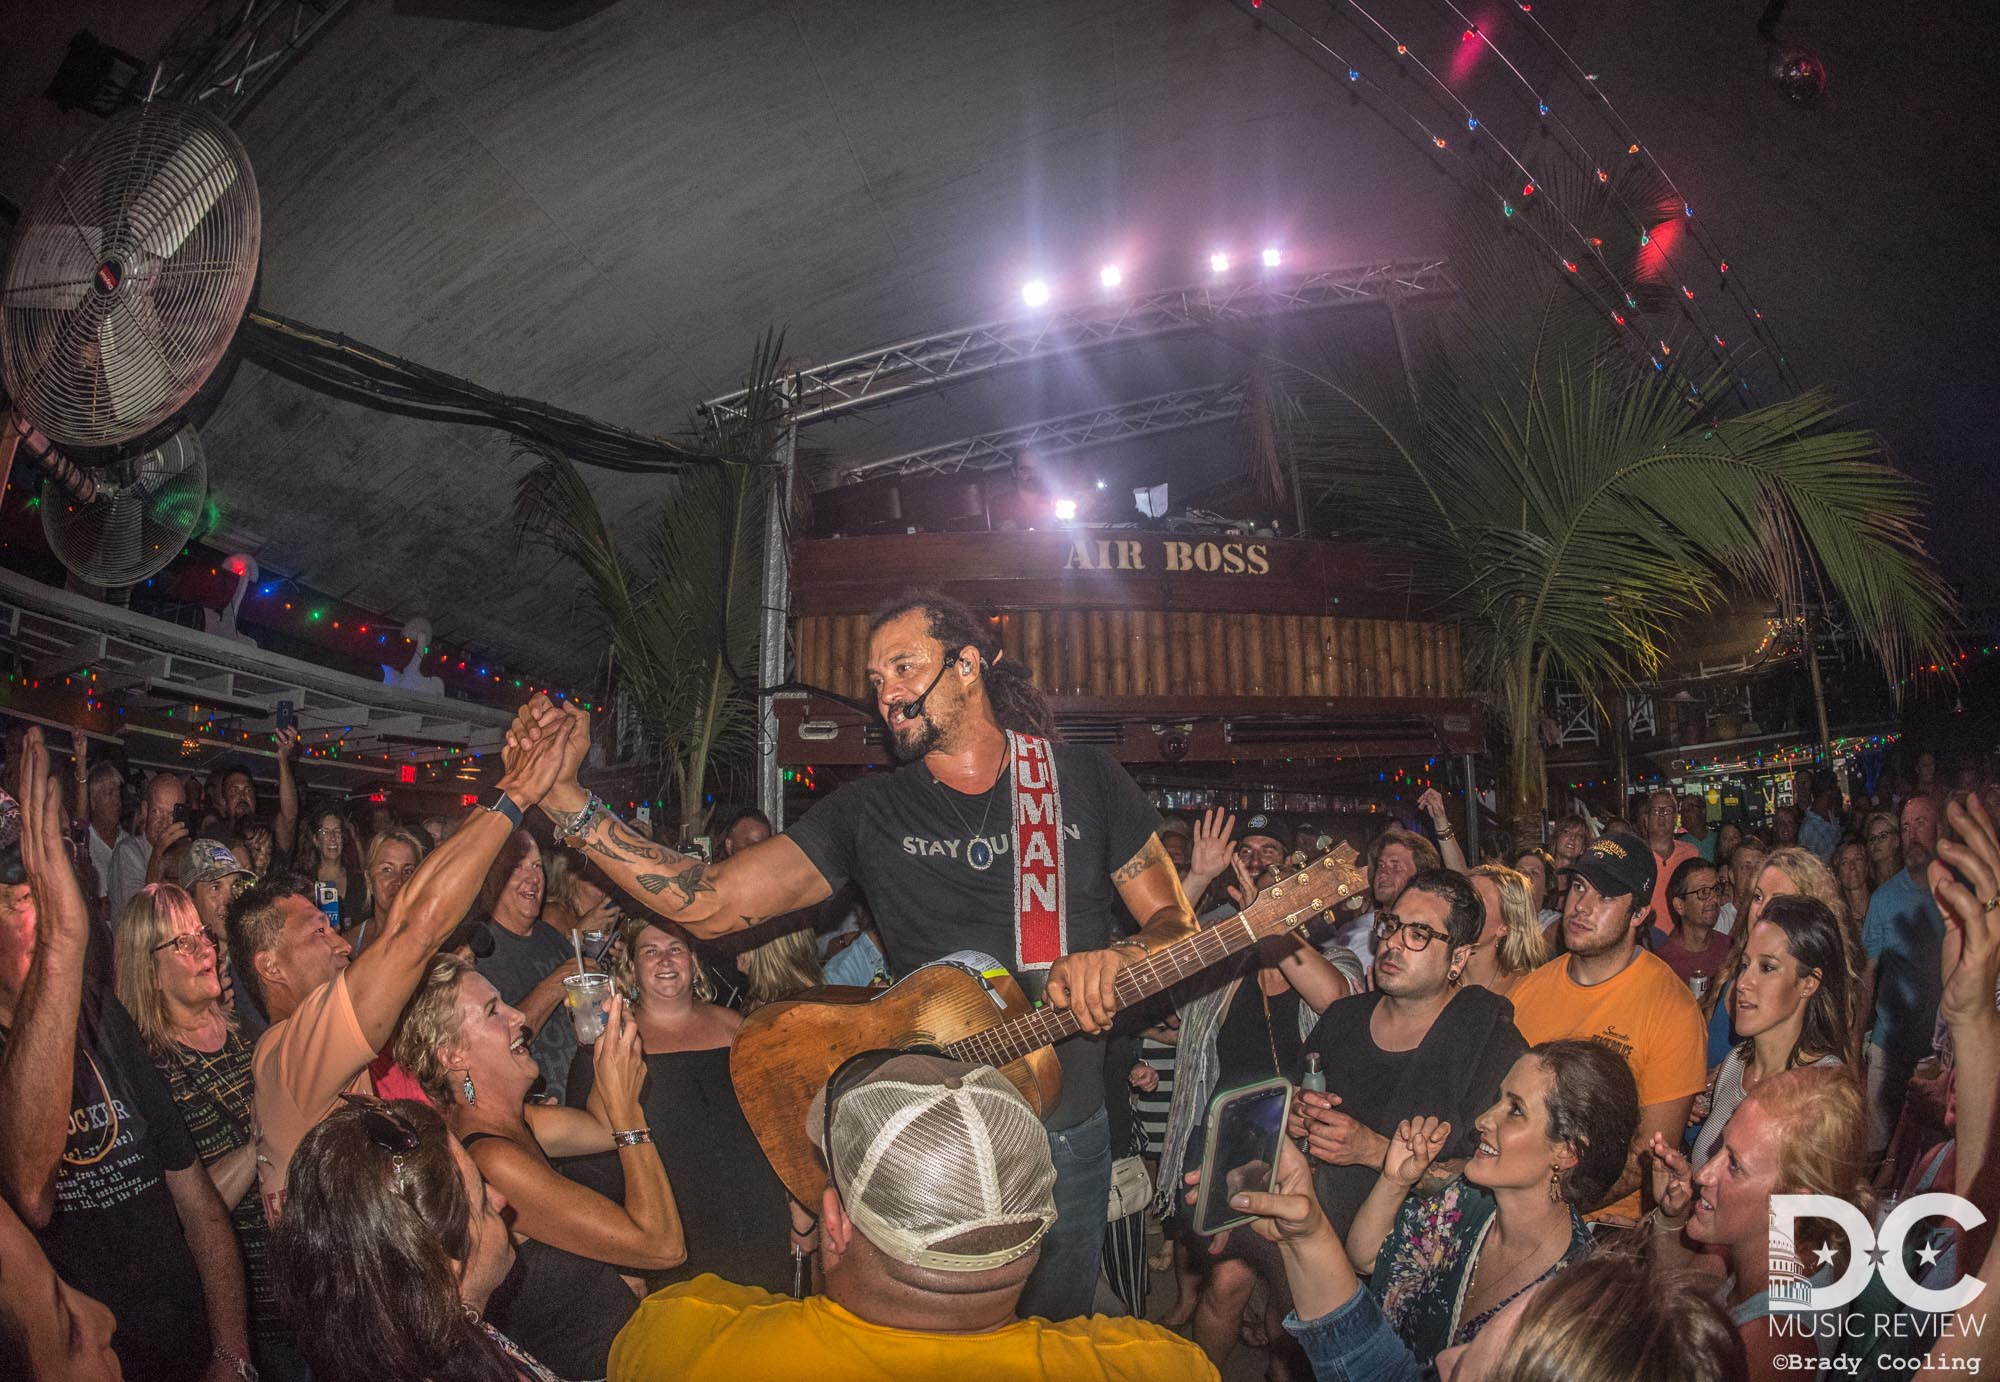 Michael Franti enjoys performing in the crowd